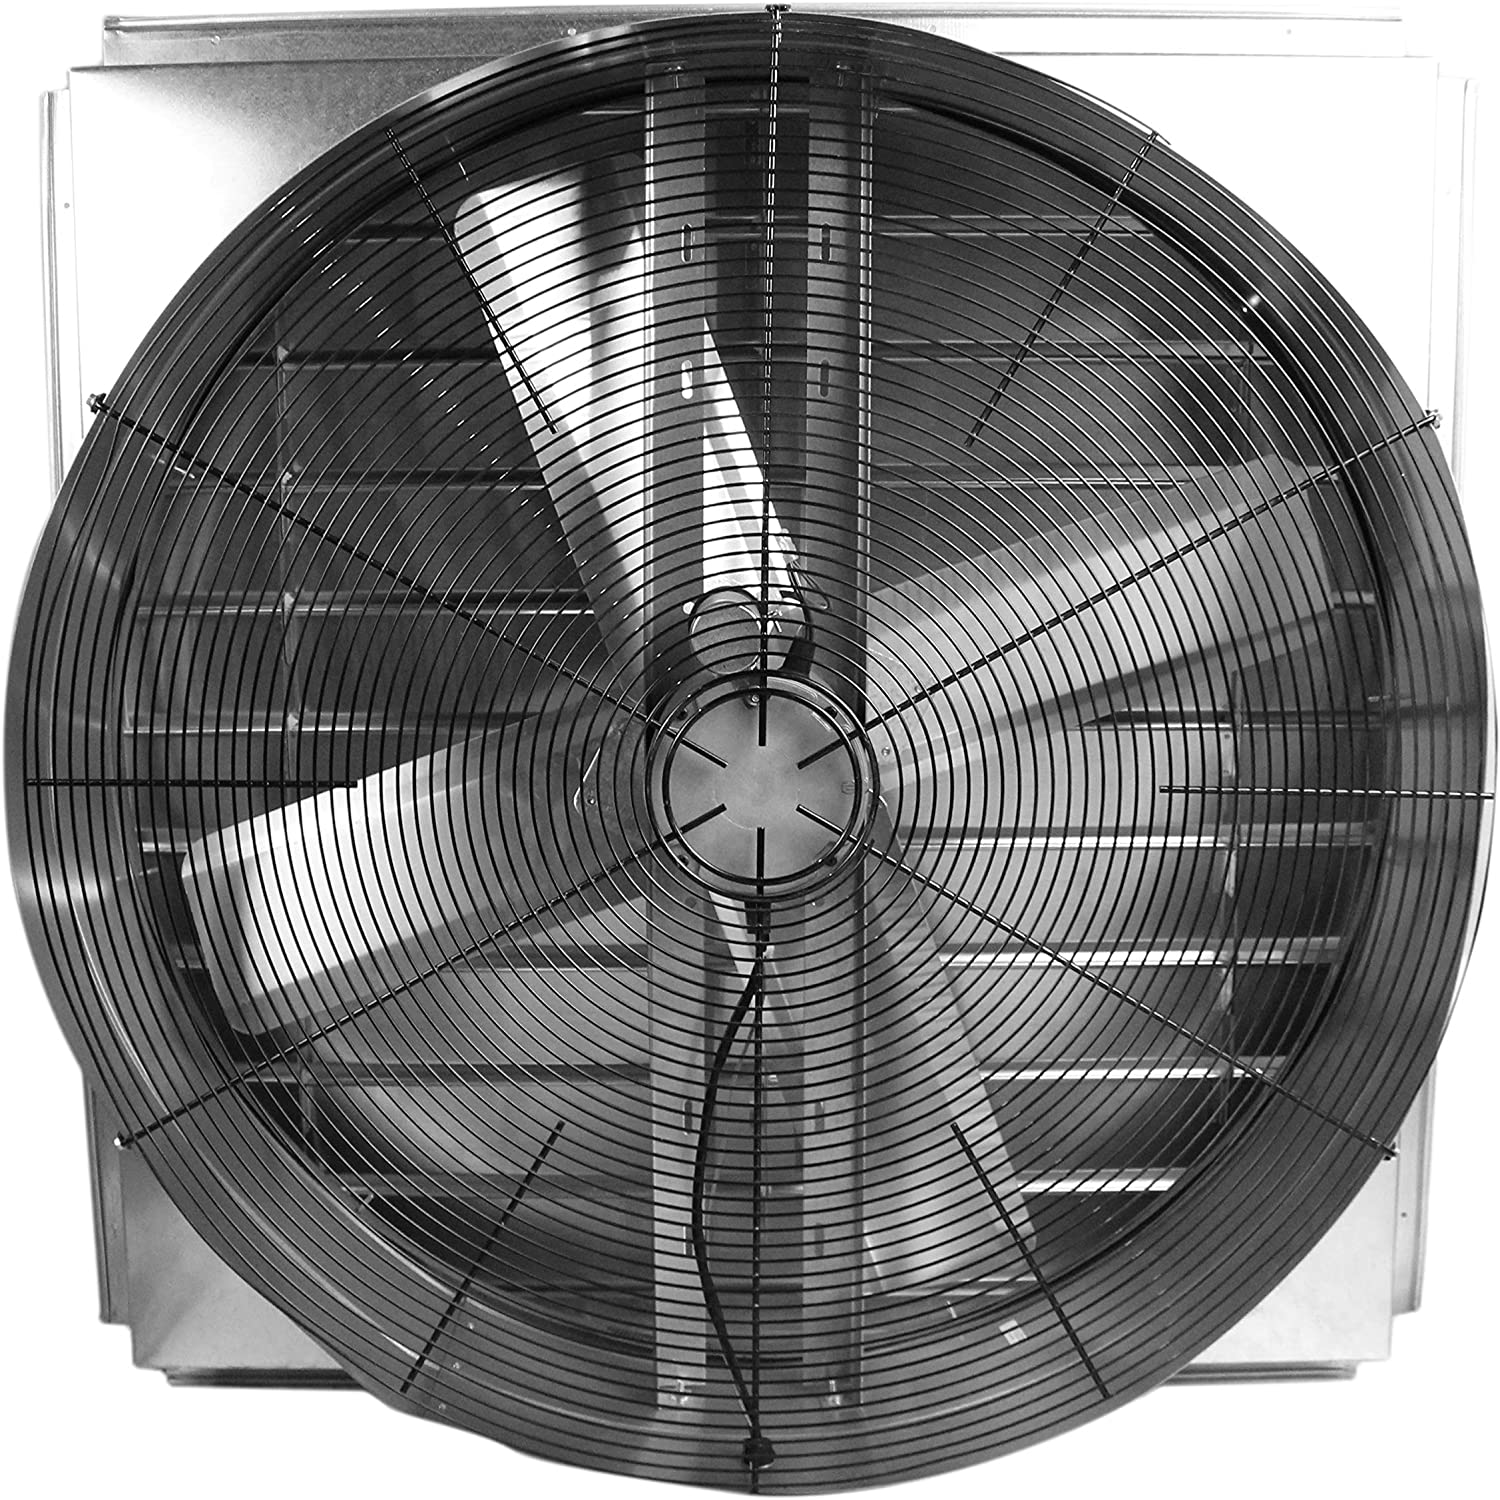 18 Inch Powerful Industrial Exhaust Fan Made in The USA